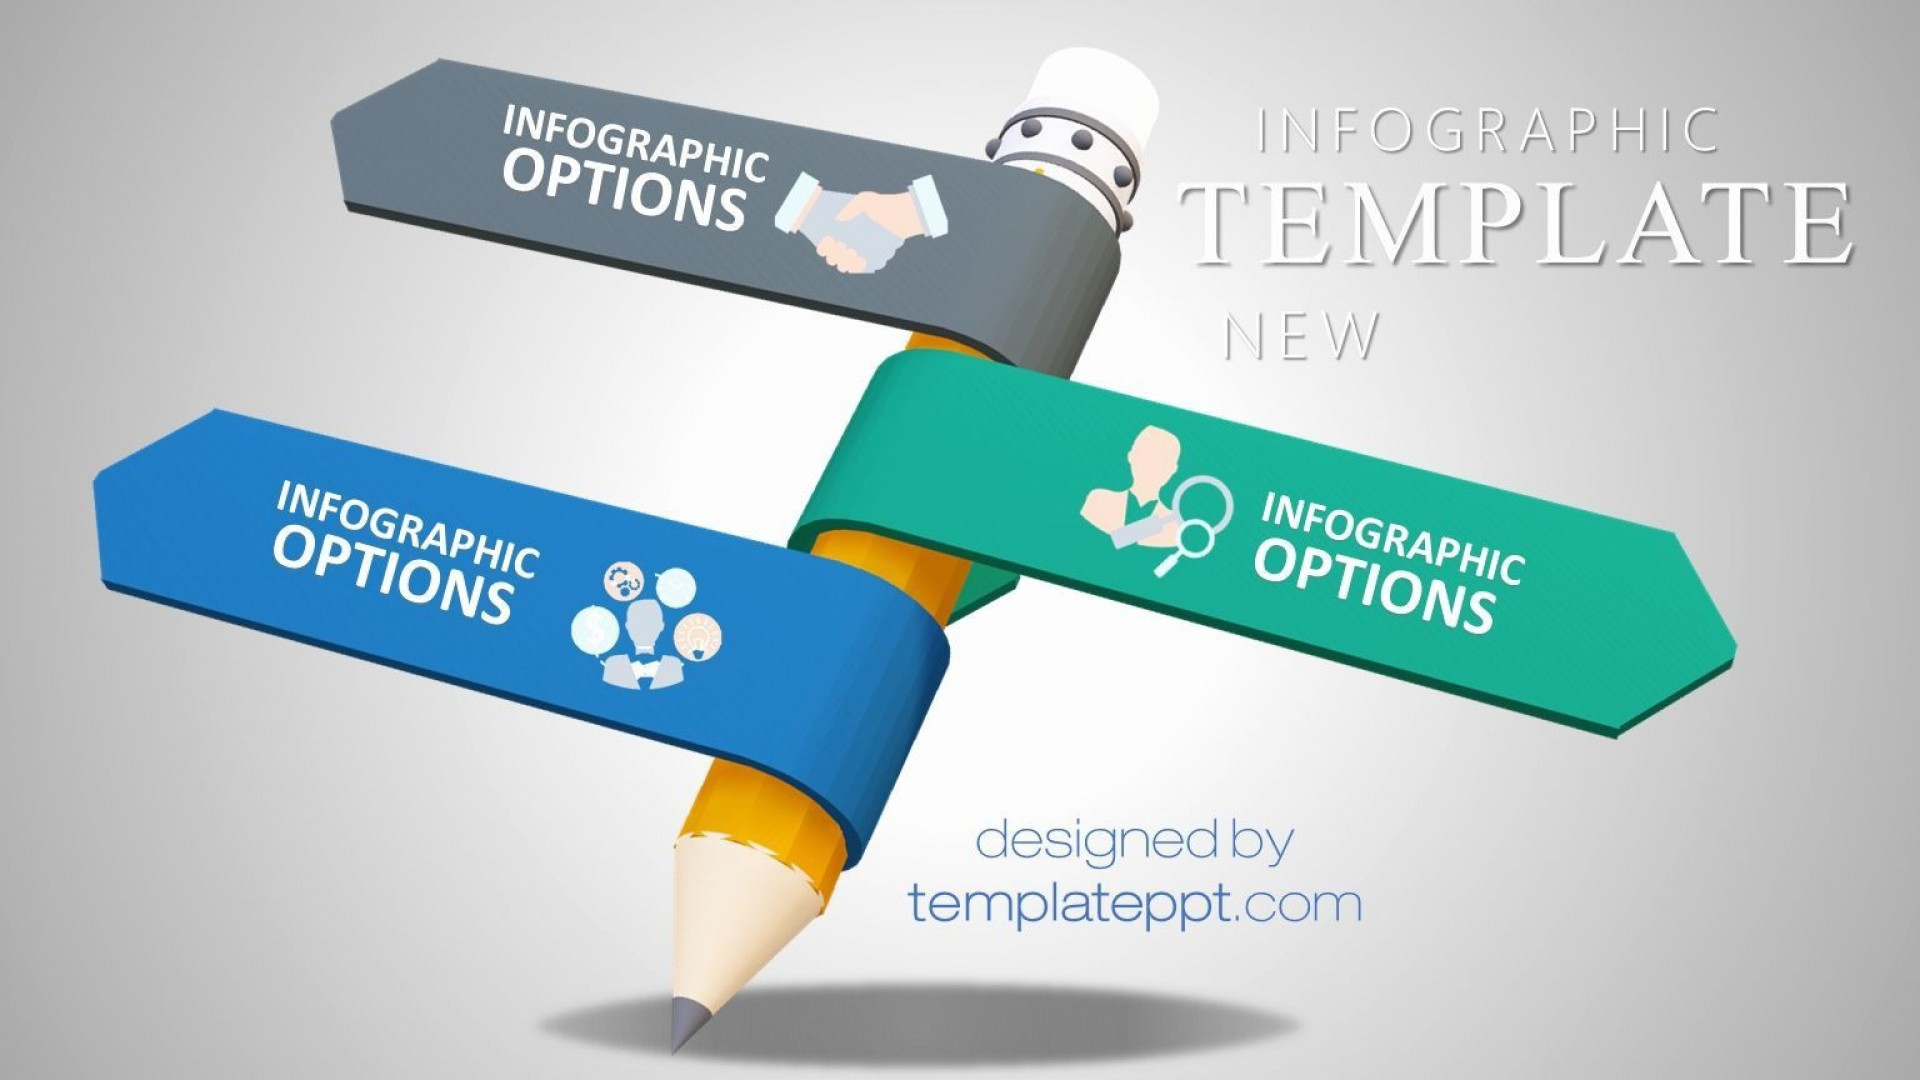 004 Excellent Free 3d Animated Powerpoint Template Download Highest Clarity  2017 2016 Tinyppt1920